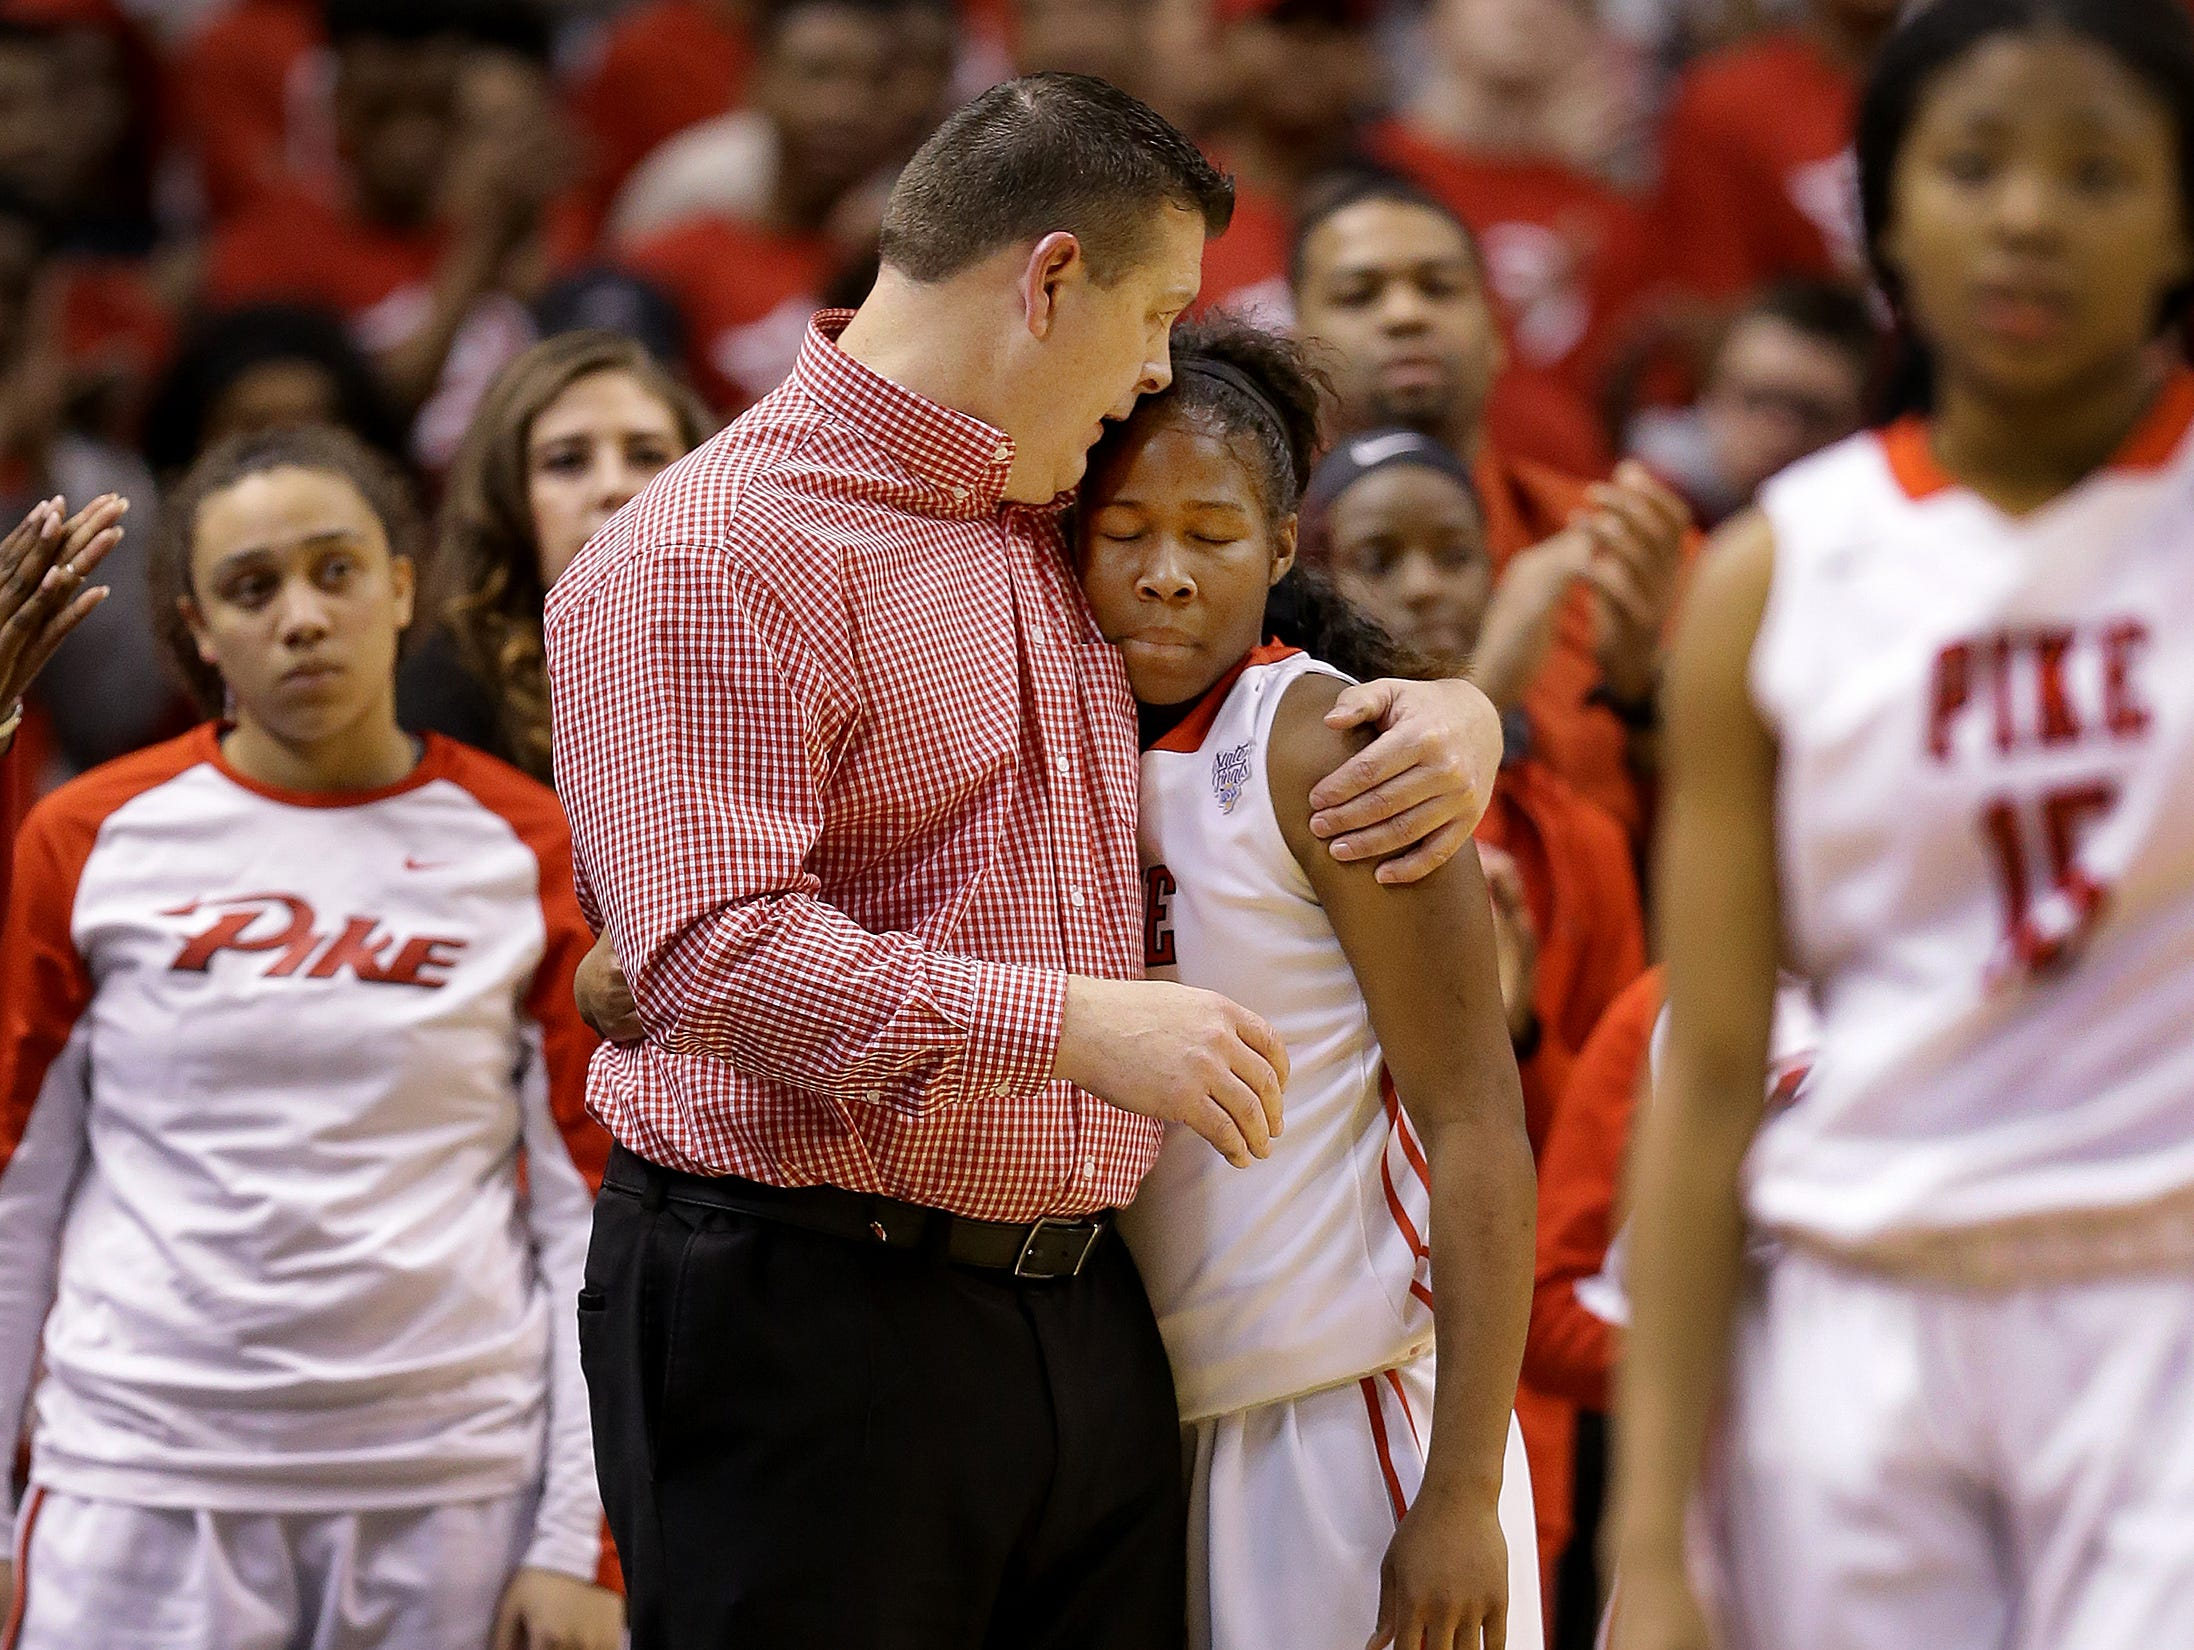 Pike Red Devils head coach Robert Anglea comforts Jada Robertson (3) after she fouled out late in the second half of their IHSAA 4A Girls Basketball State Finals game Saturday, February 25, 2017, evening at Bankers Life Fieldhouse. The Homestead Spartans defeated the Pike Red Devils 61-54.